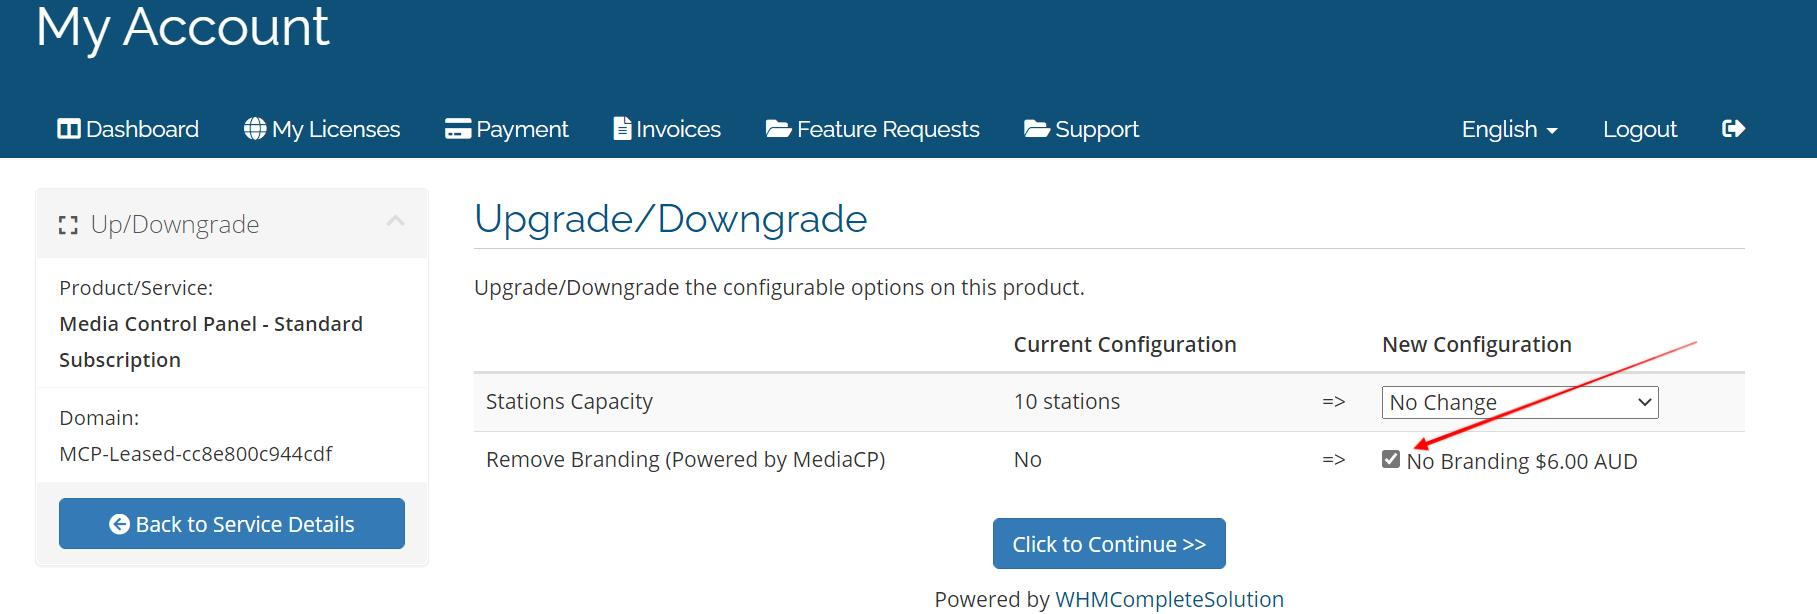 Upgrade_Downgrade - Media Control Panel and 1 more page - Work - Microsoft_.. 2021-08-02 at 2.30.54 PM